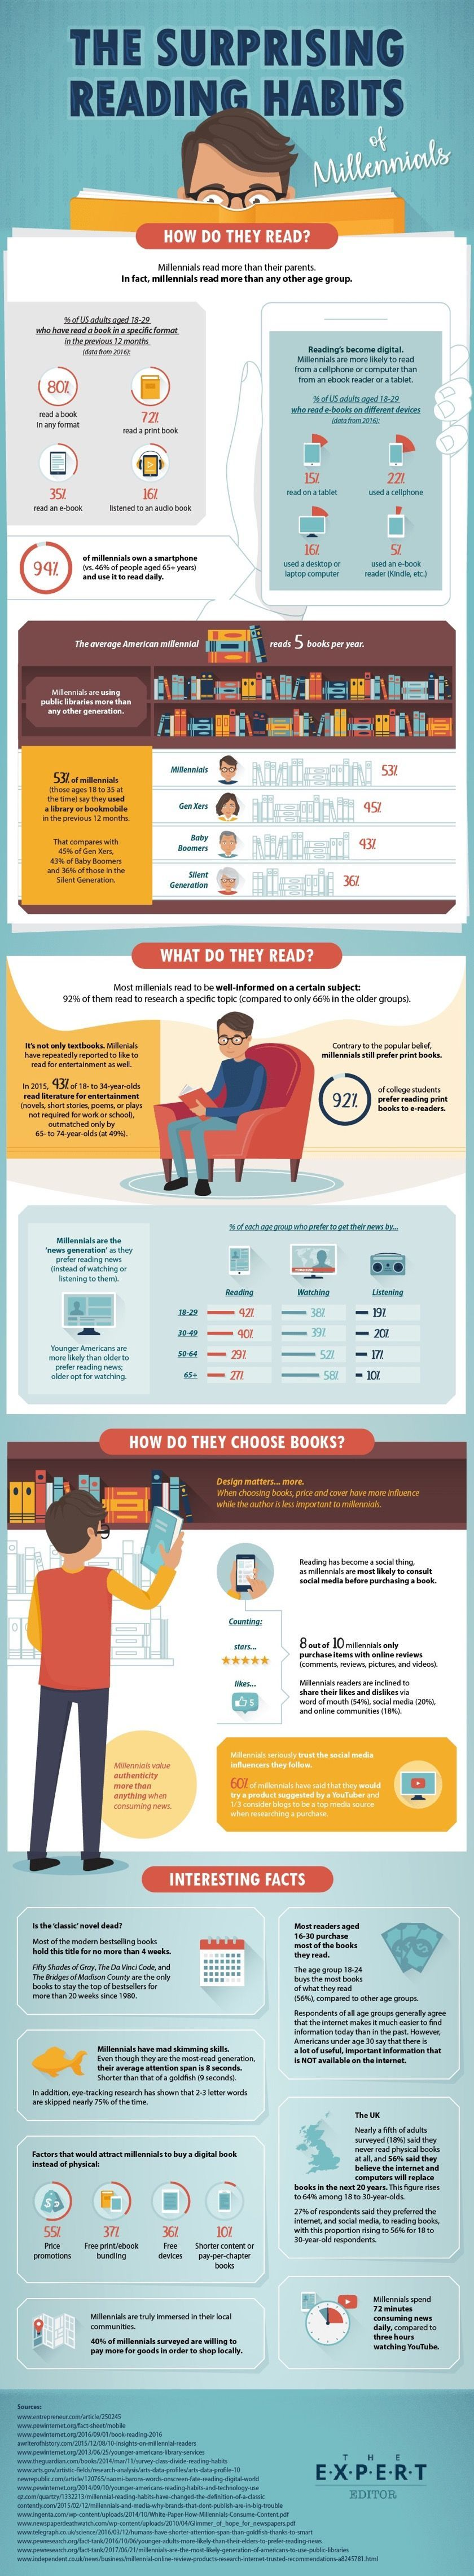 What Can We Learn From The Reading Habits Of Millennials Infographic Reading Habits Millennials Infographic Reading Adults learn how to read